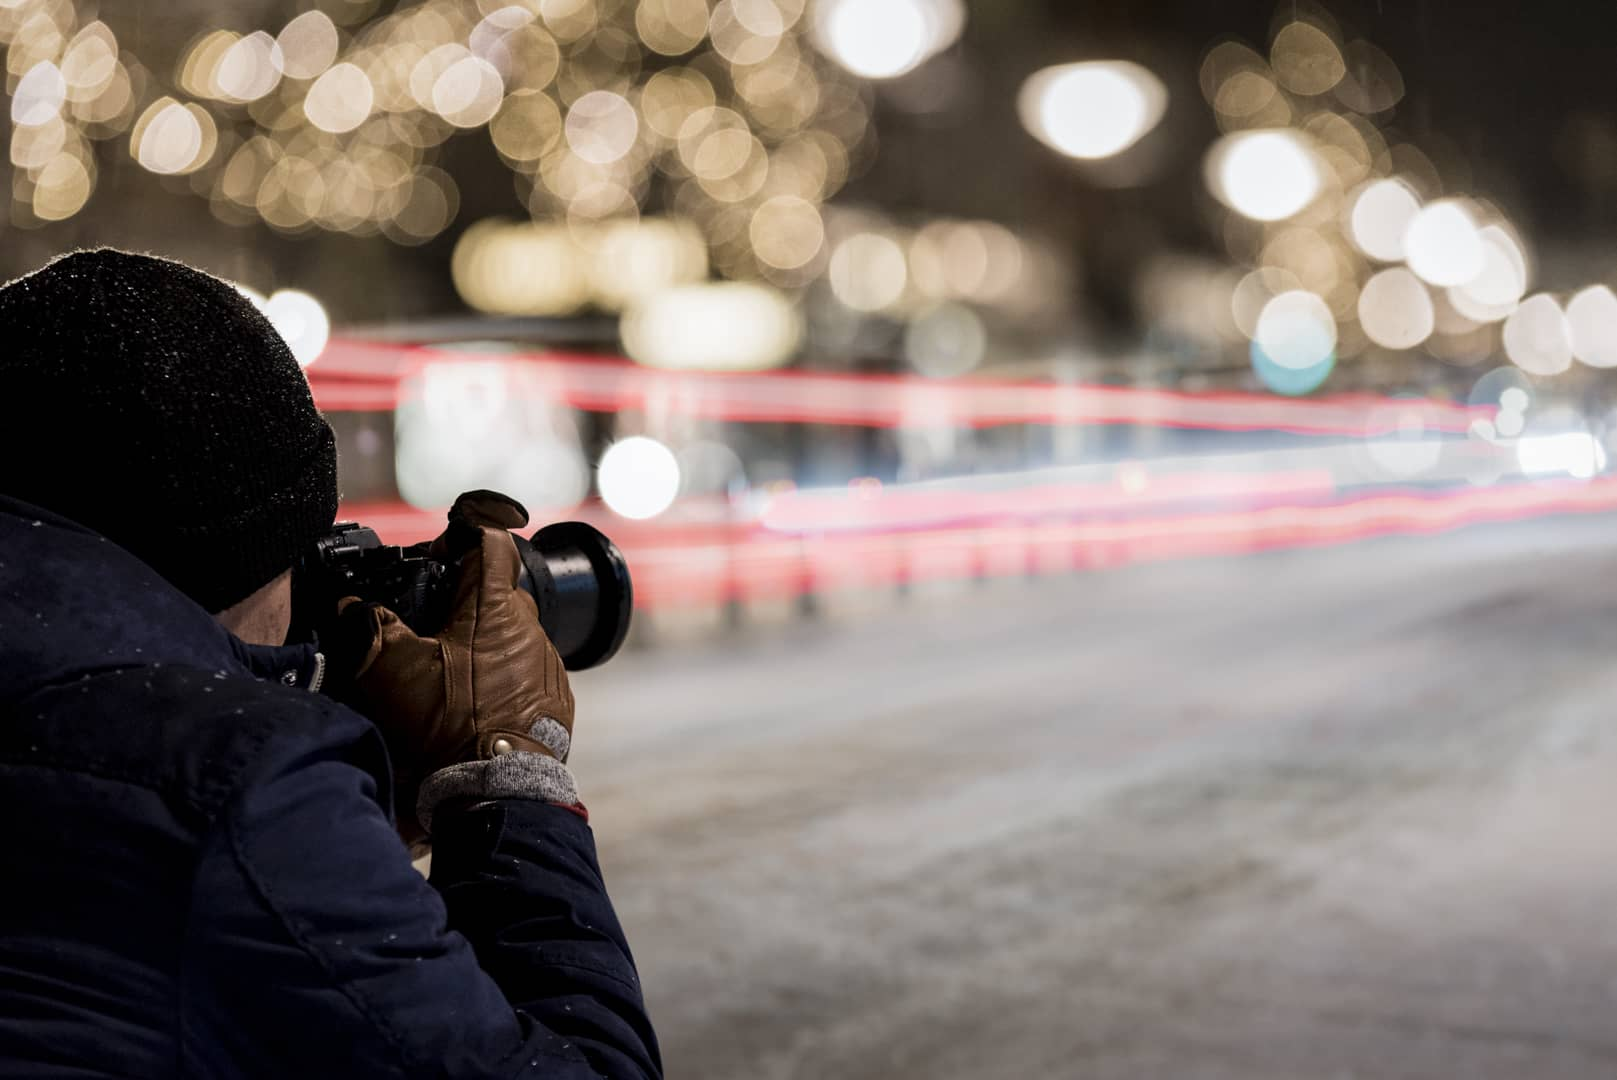 Person taking a photo of a city street in winter by Carl van den boom